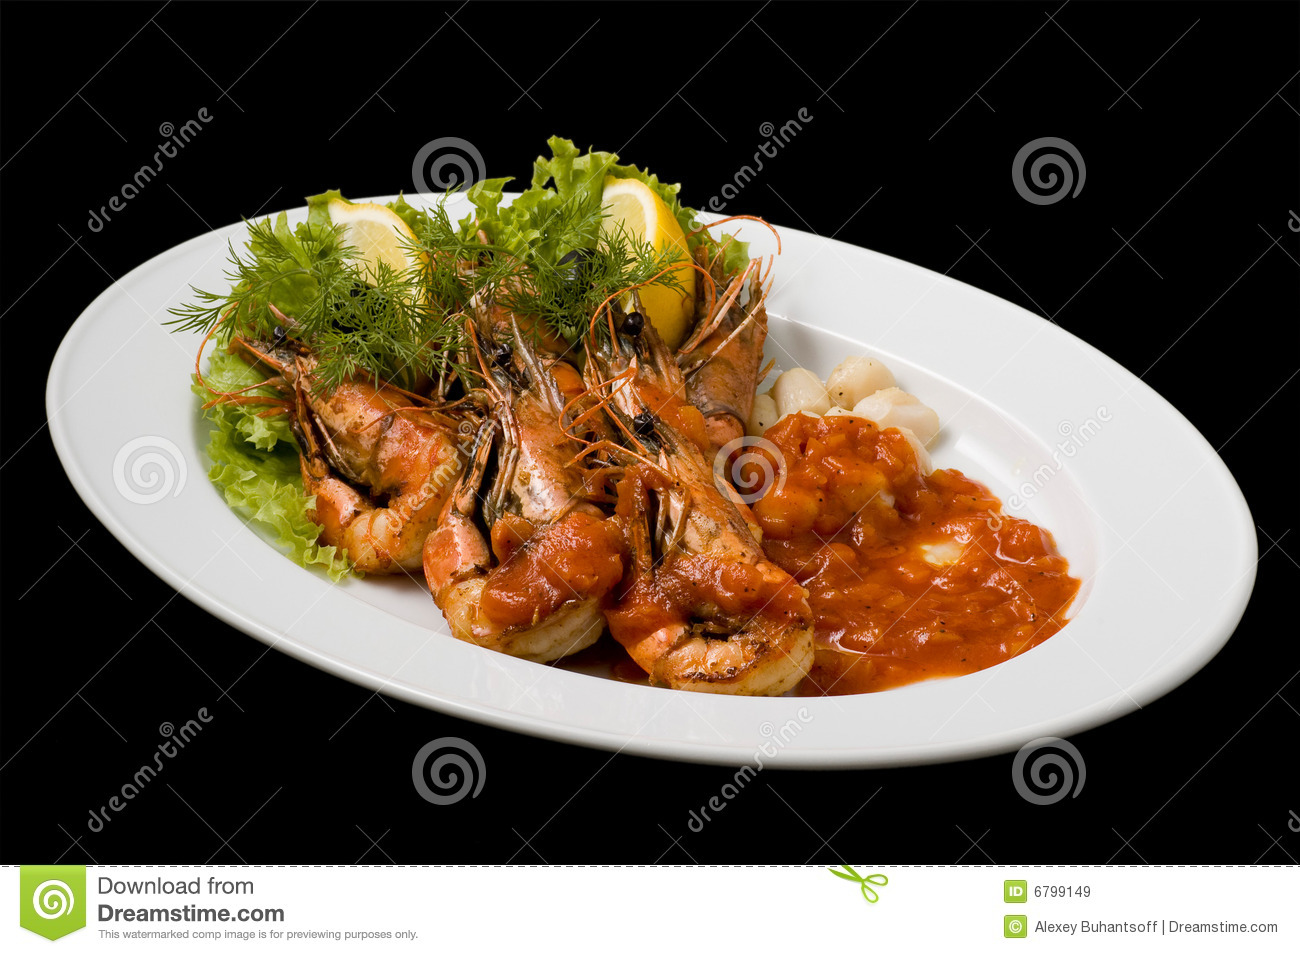 how to use cooked shrimp